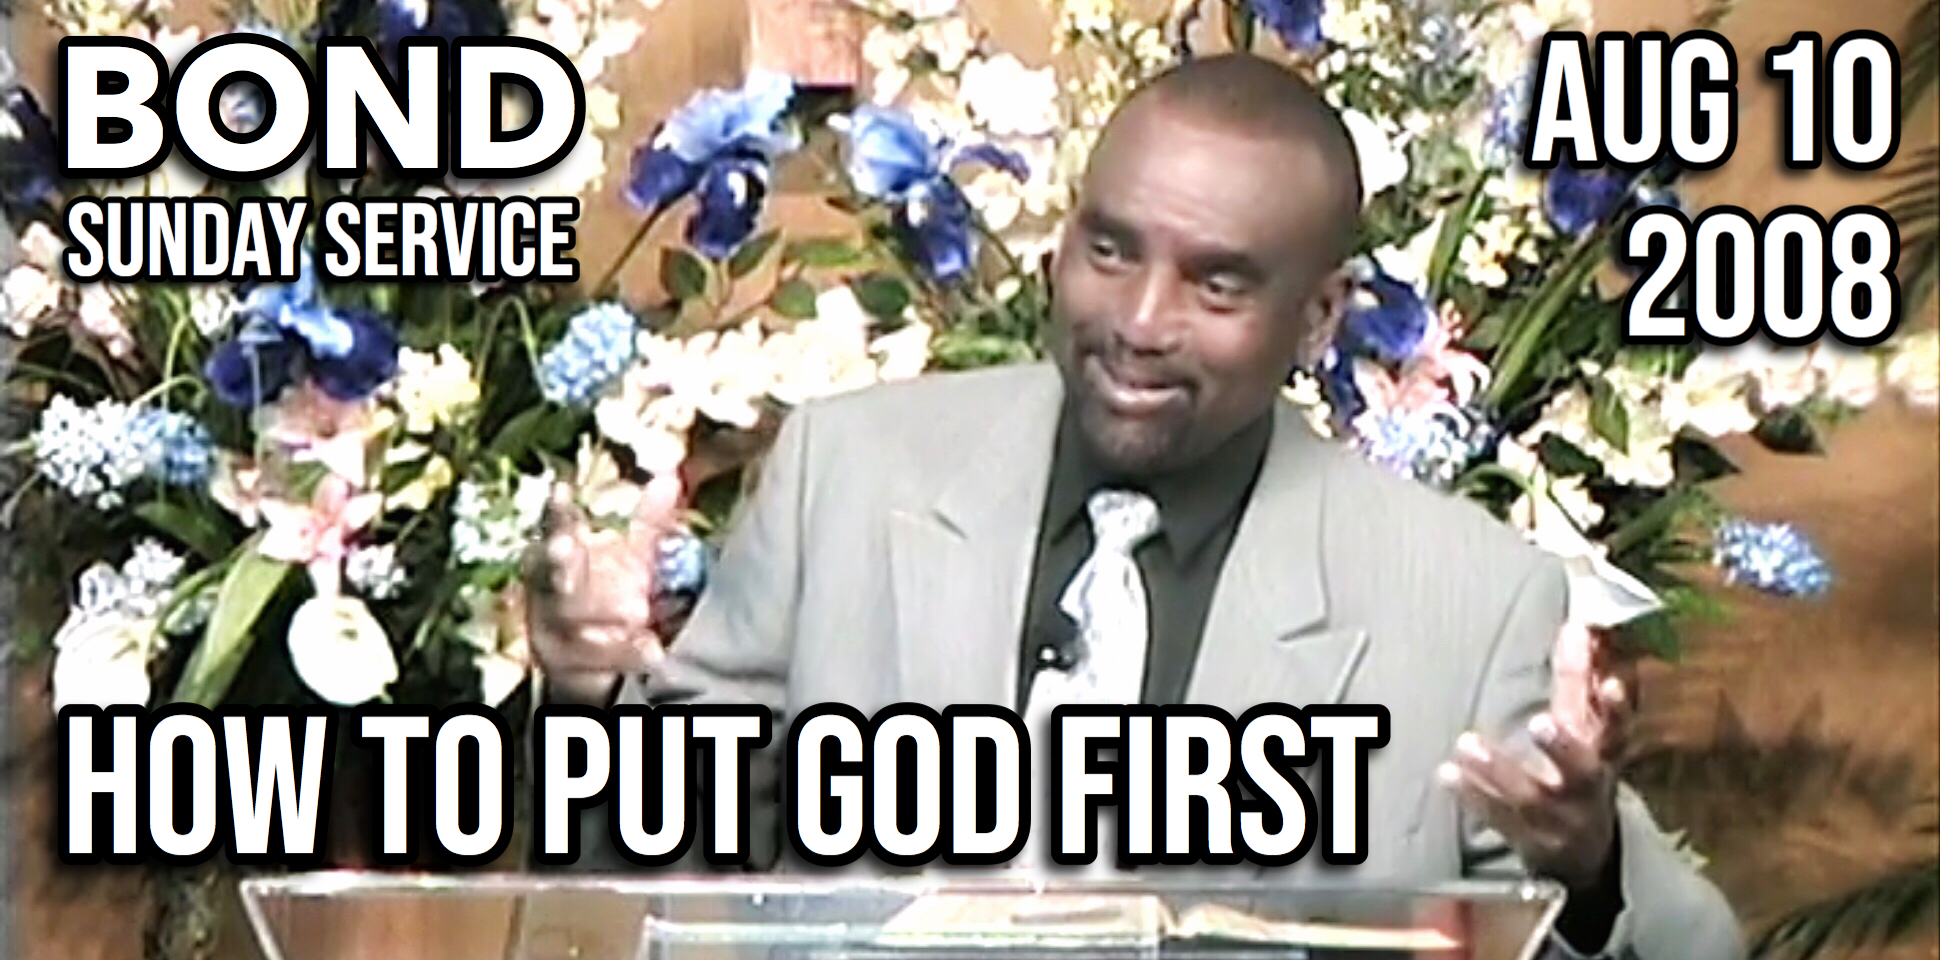 How to Put God First (Sunday Service, Aug 10, 2008)